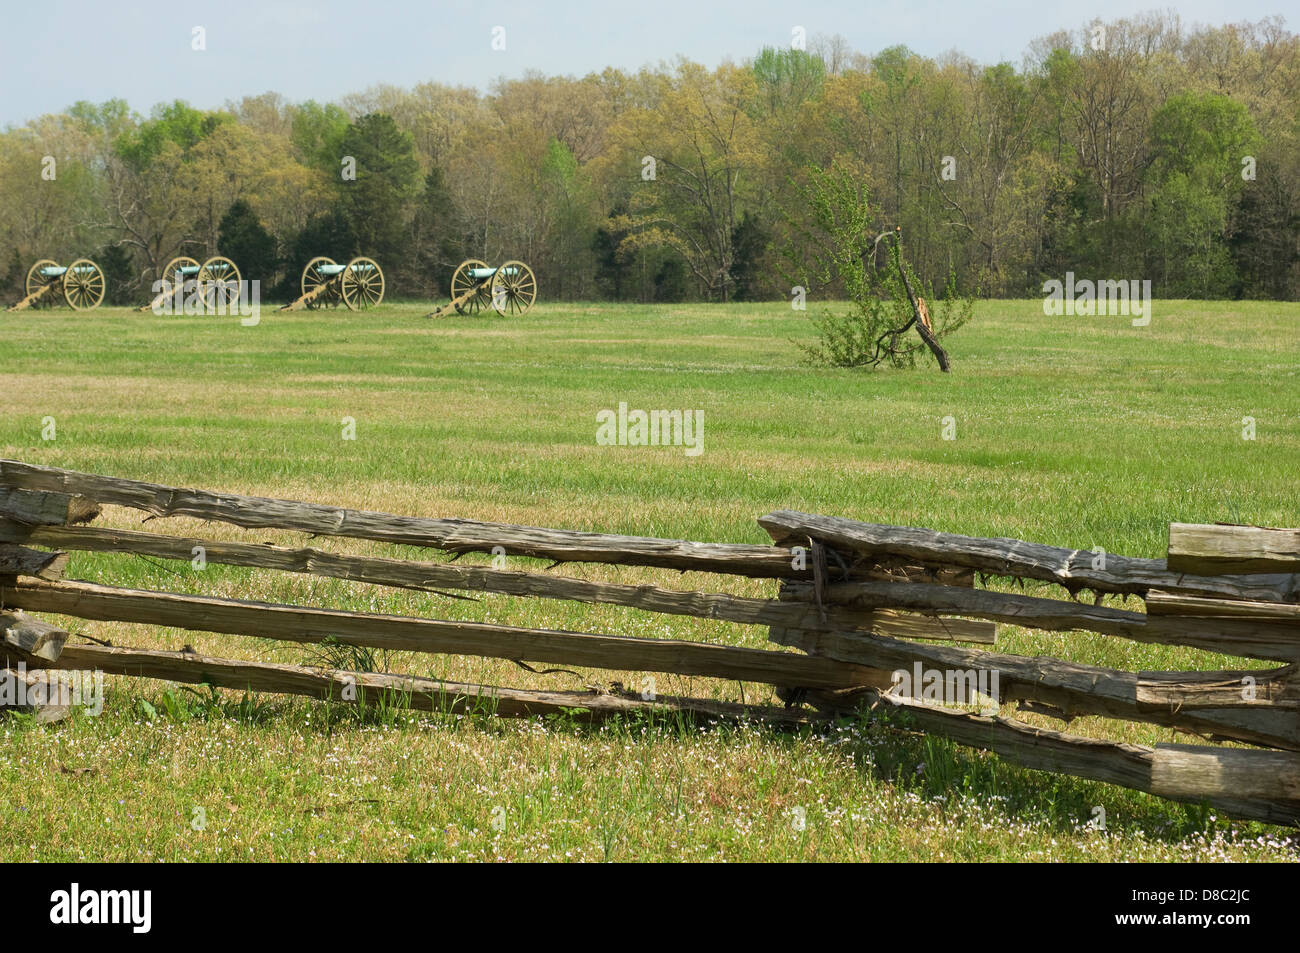 Artillery on the battlefield at Shiloh National Military Park, Tennessee. Digital photograph - Stock Image